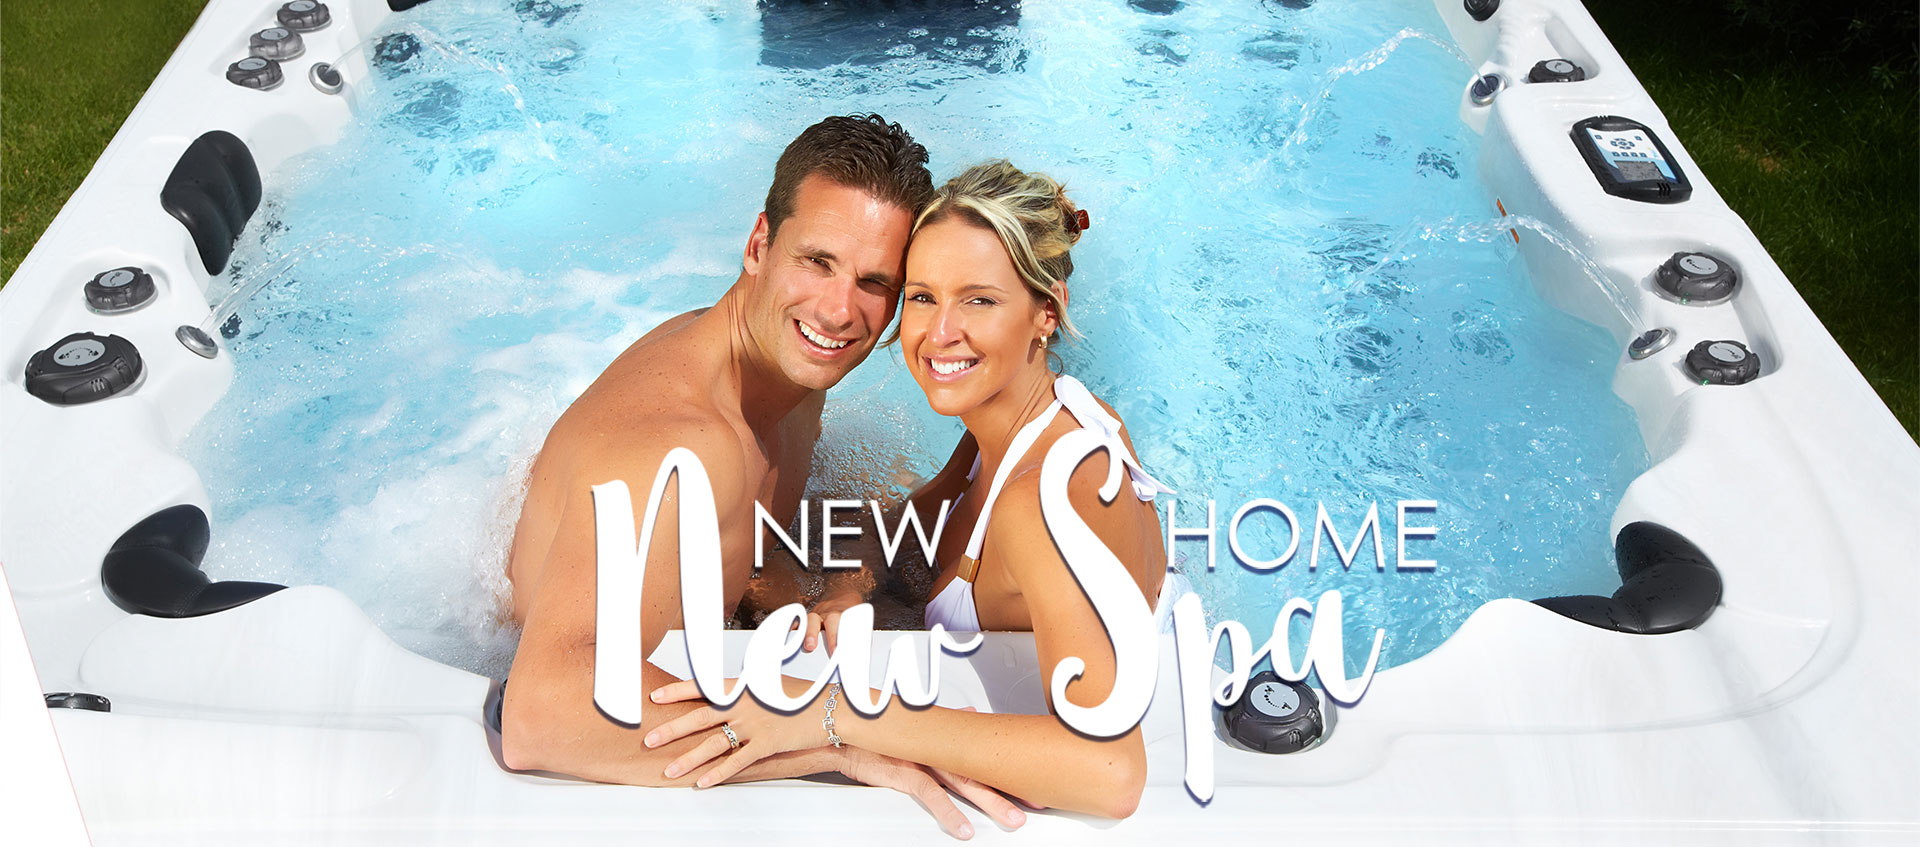 spa header banner - New Home New Spa